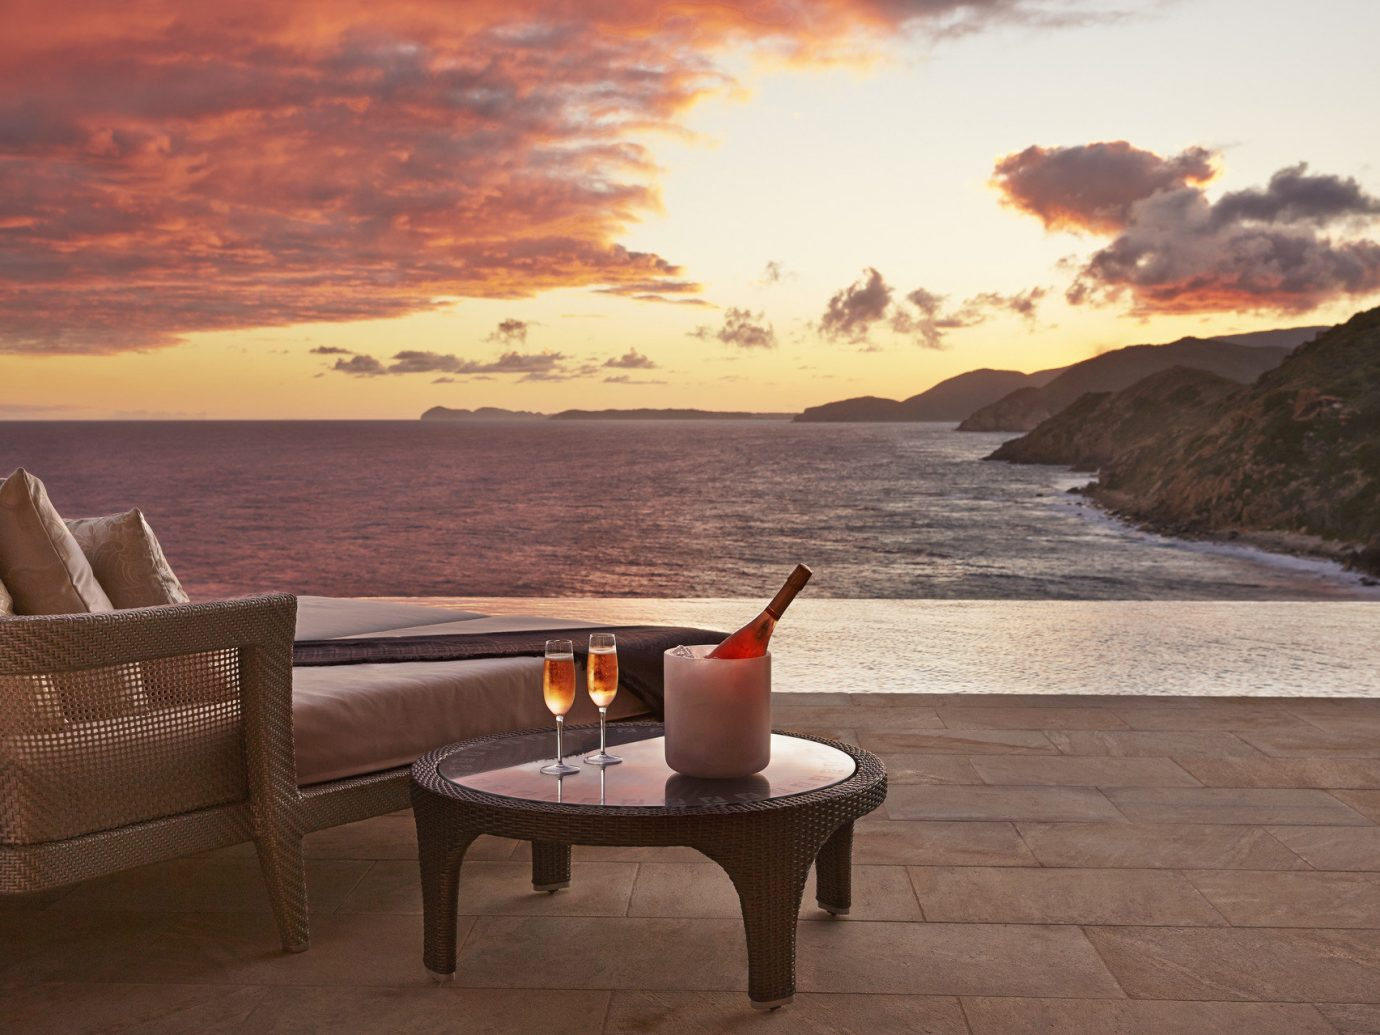 Beach calm champagne Drink drinks golden hour infinity pool isolation lounge chairs Luxury Ocean ocean view orange sky outdoor pool Pool private remote Romance Romantic sand serene Sunset Trip Ideas view white sands sky water outdoor mountain Sea morning evening Nature wood Coast overlooking